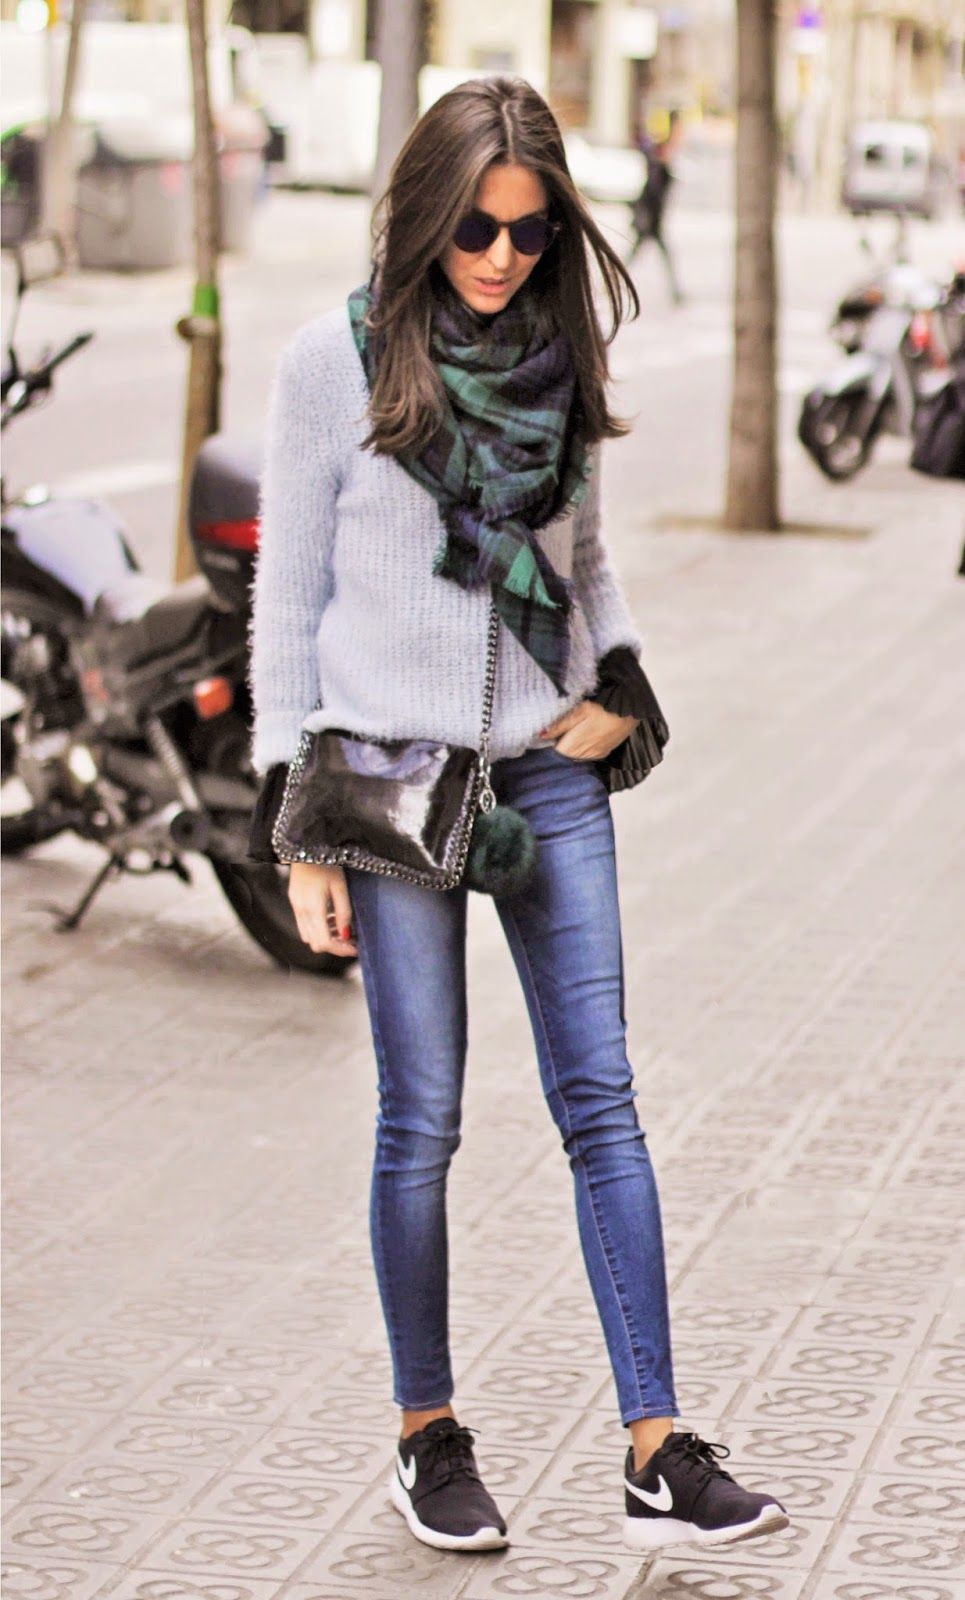 various colors 73773 33894 BCN FASHIONISTA   Fashion Point   Moda, Outfits y Ropa de otoño